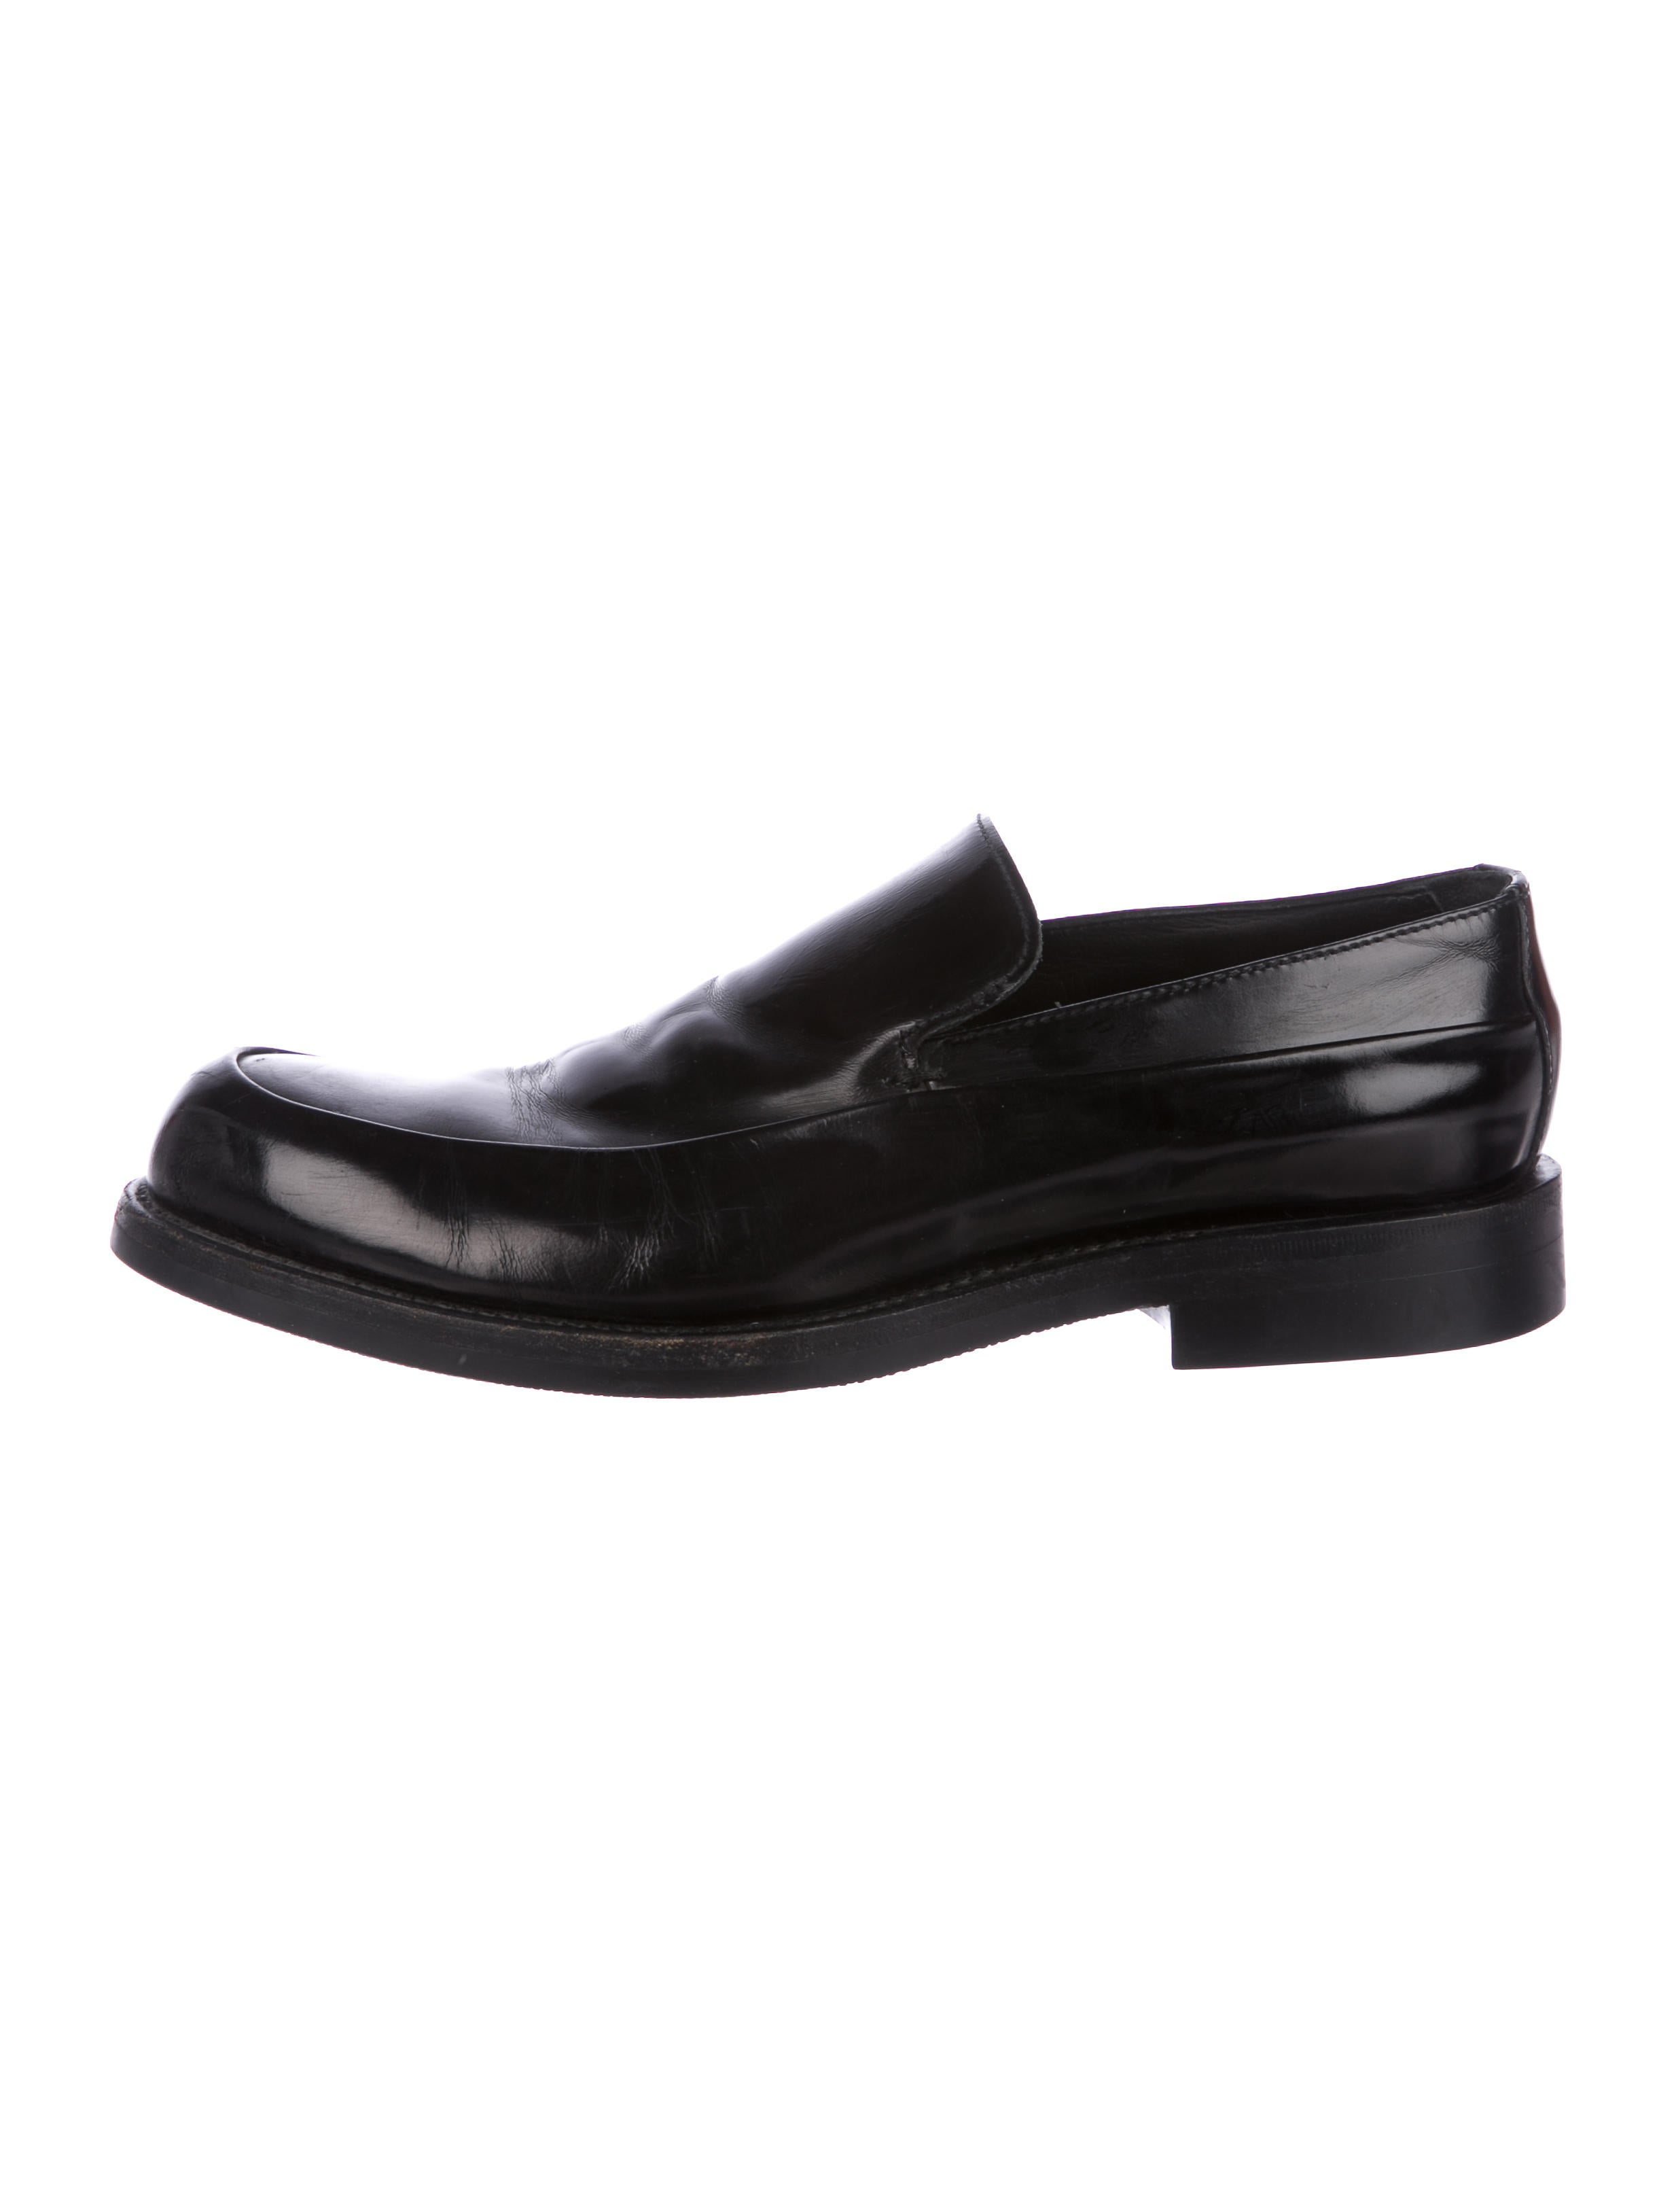 Prada Leather Round-Toe Loafers clearance discounts wiki online clearance genuine affordable ESooMu8Z